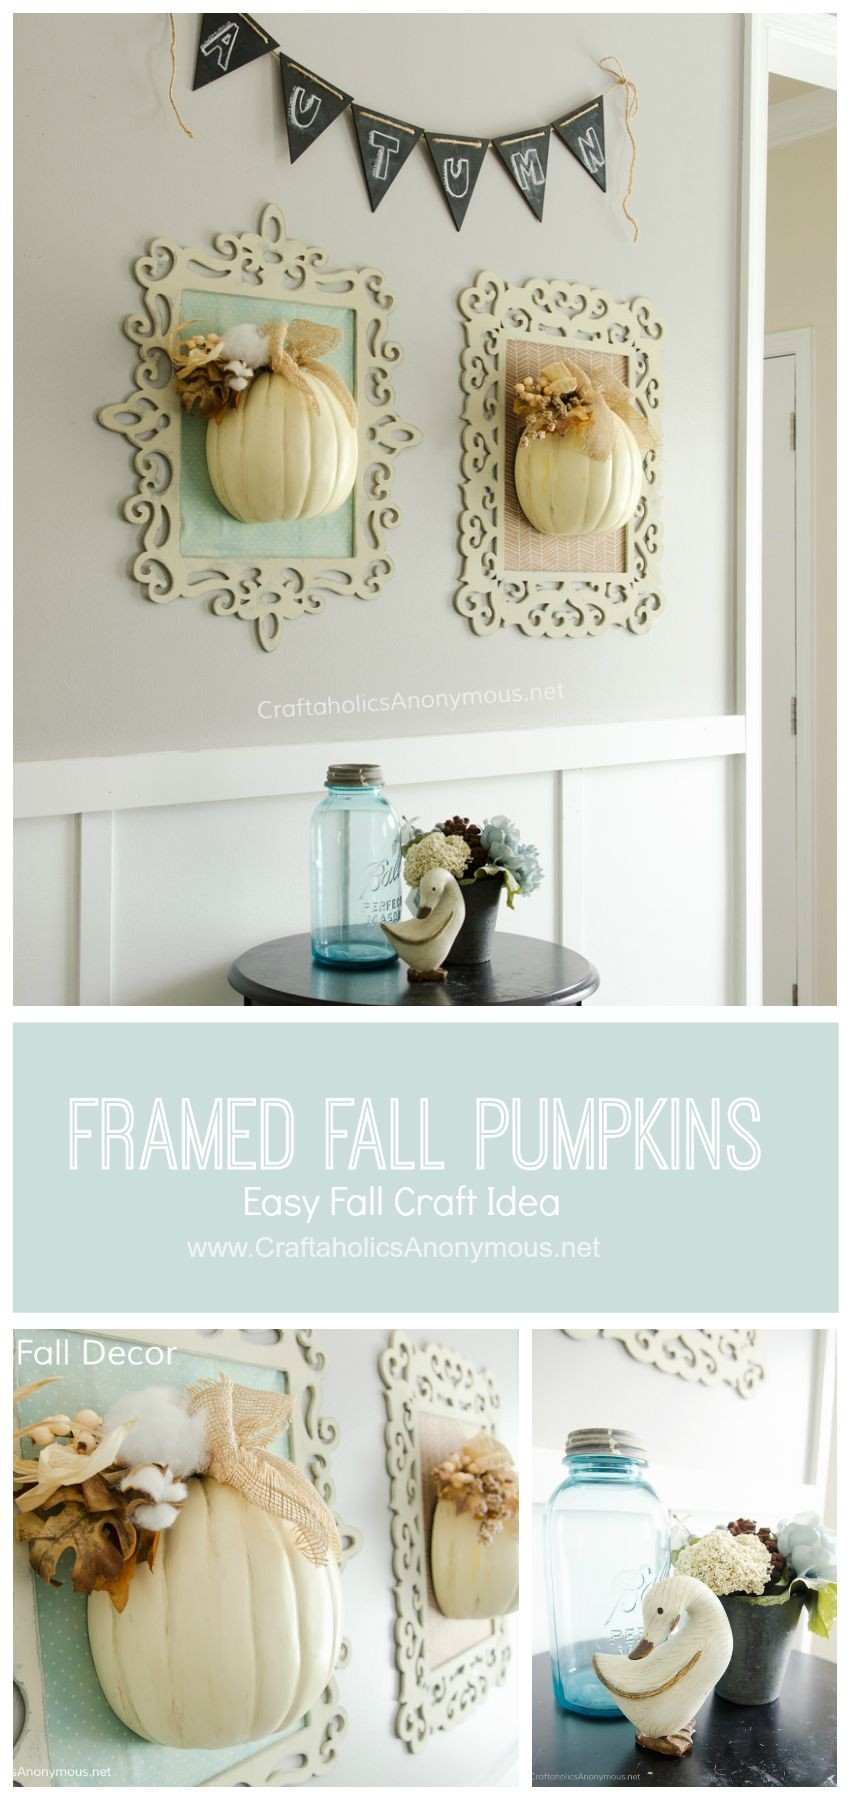 Framed Fall Pumpkins collage || This is a great way to use those fun curvy frames!